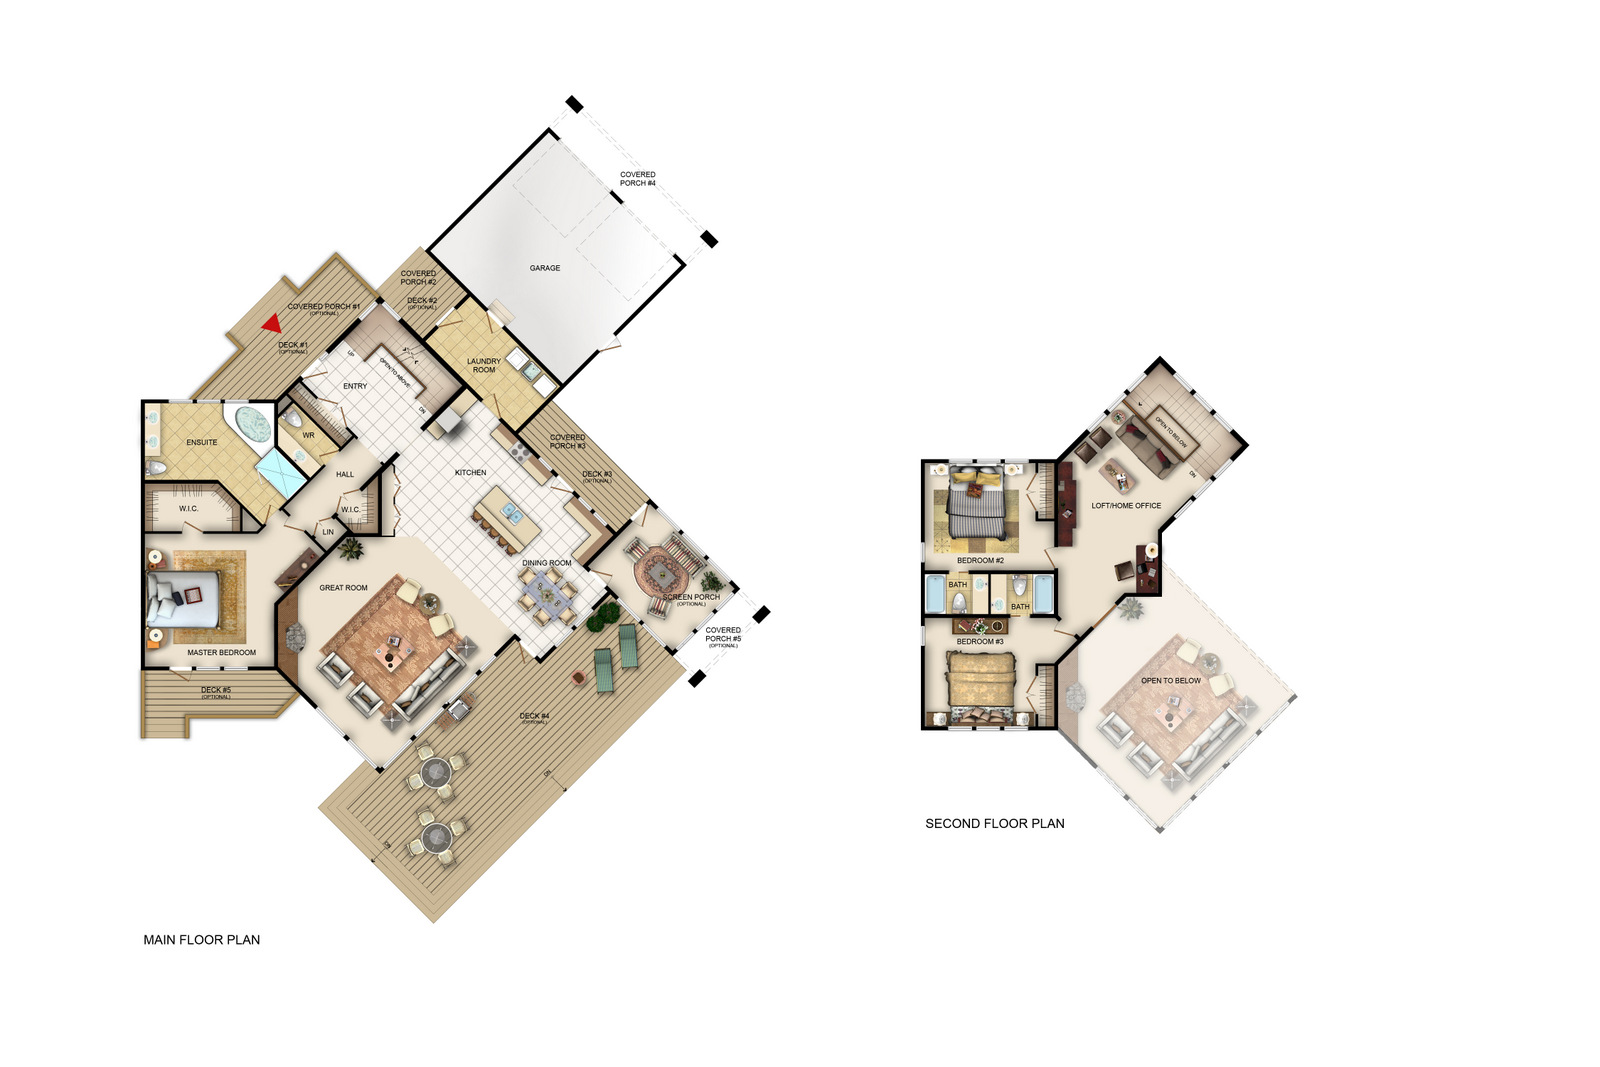 The Rainier Floorplan